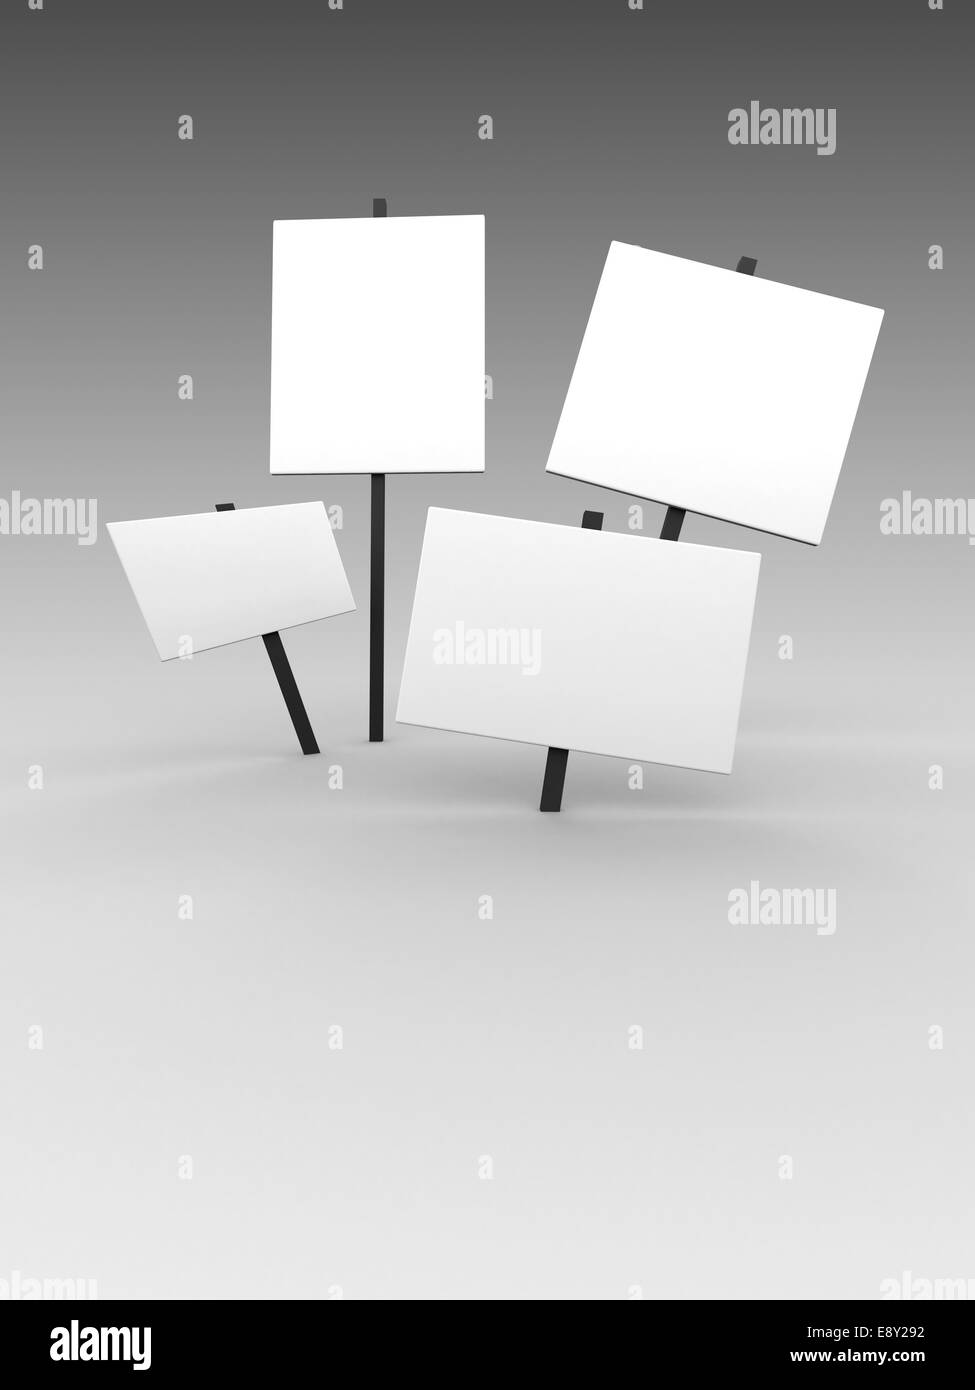 blank placards - Stock Image